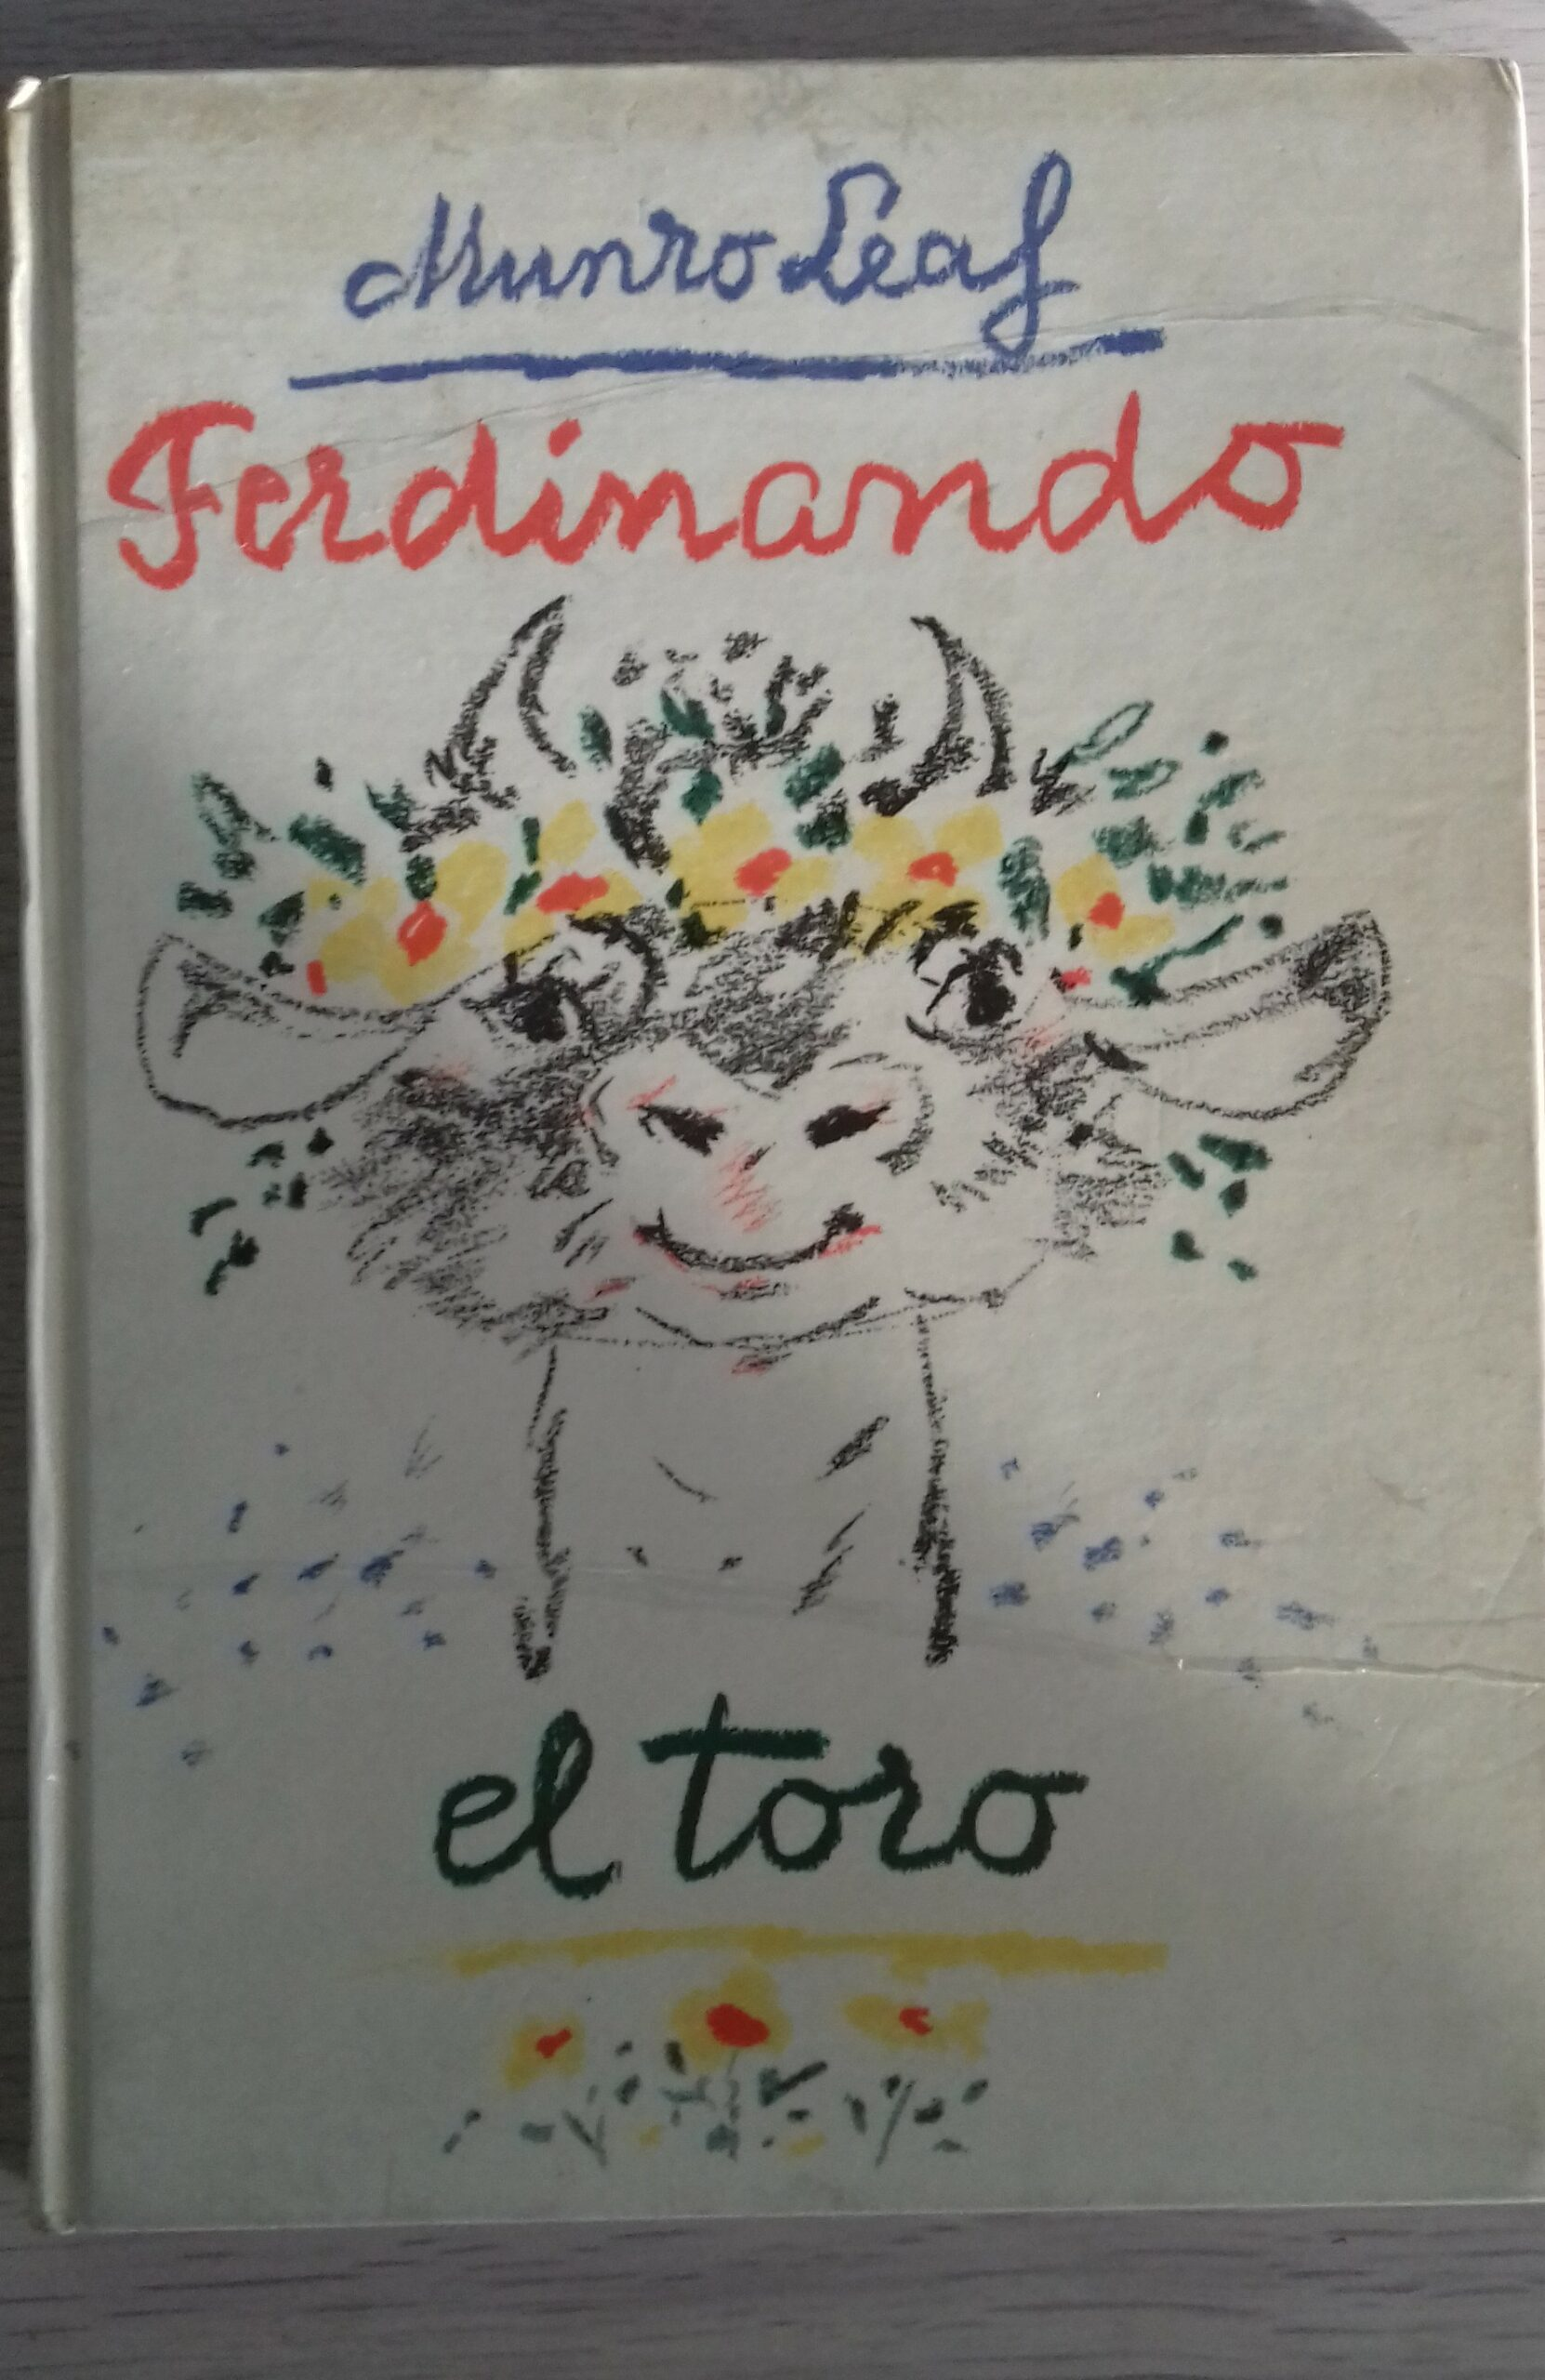 Brightly coloured image of Spanish cover of Ferdinand the BUll